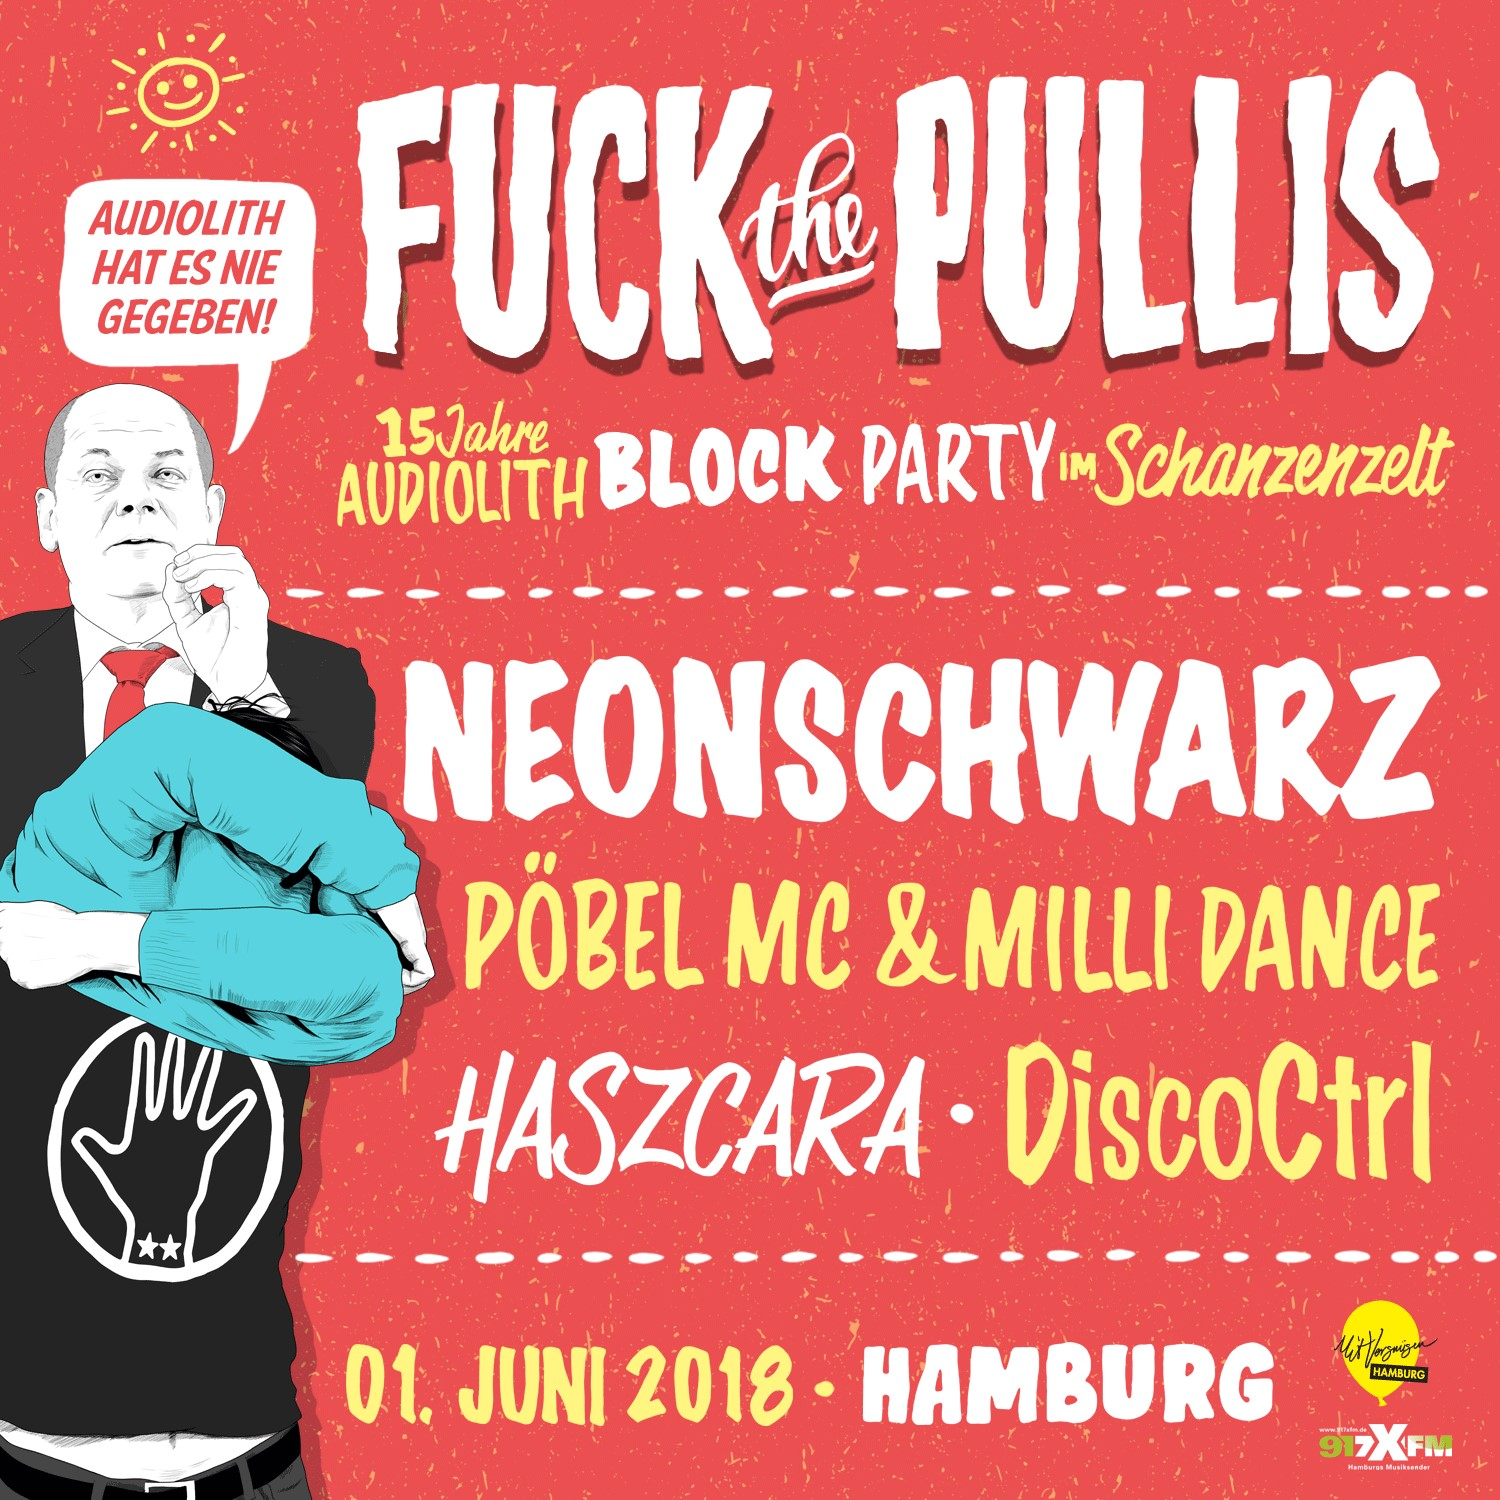 Preview: Fuck The Pullis - 15 Jahre Audiolith